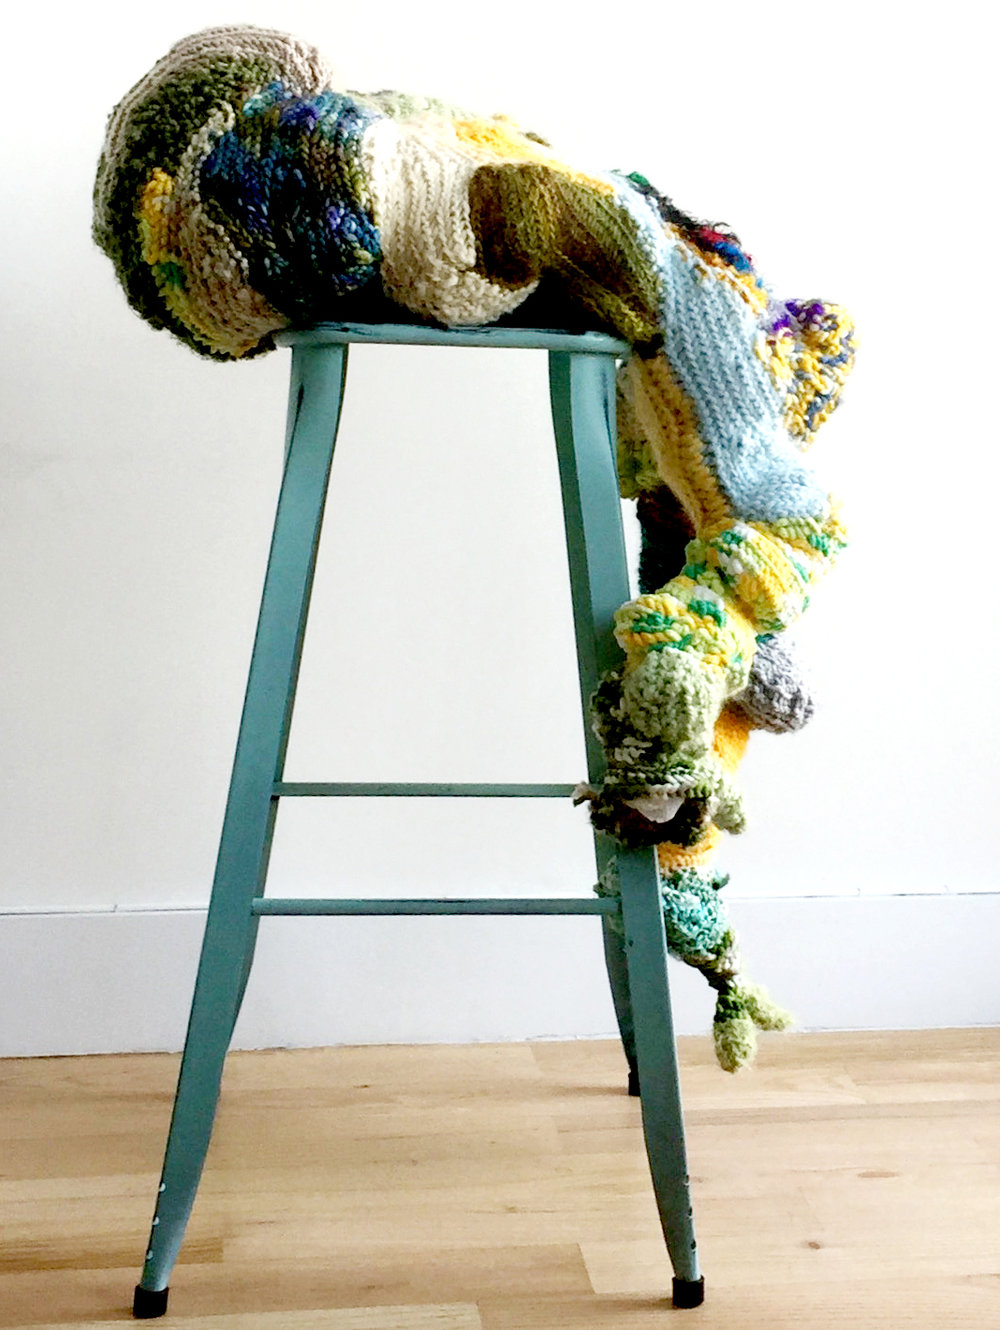 a seat at the table, 39 x 26 x 21 inches  Yarn, upcycled grocery bags (stuffing), stool.    Continuing to abstract the feminine body as ceremonial object/fertility sculpture, this full figure has taken her seat at the table.  See more here.